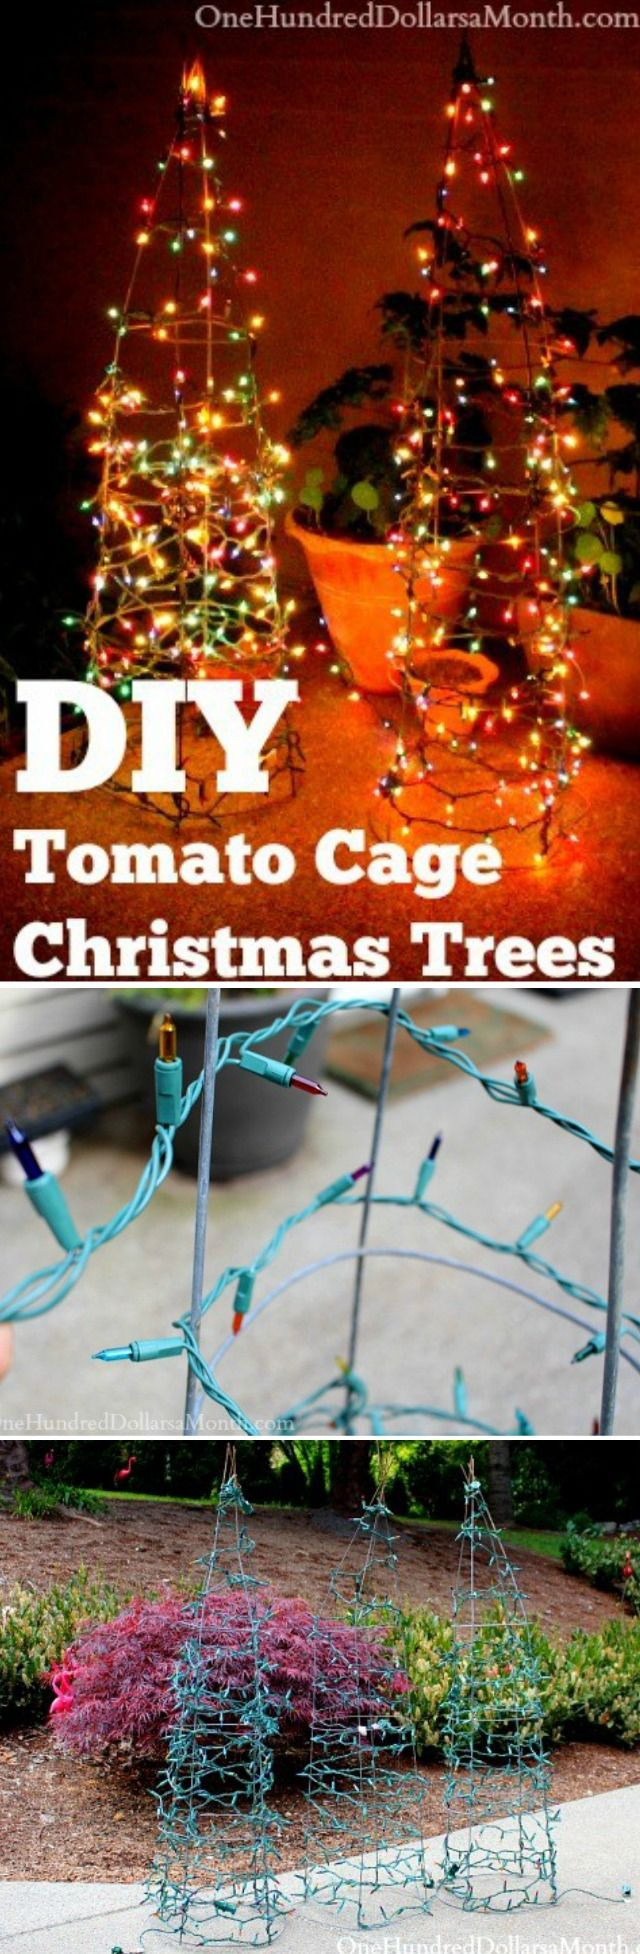 DIY, DIY Christmas Tree Ideas, Tomato Cage Crafts, Tomato Cage Christmas Trees, Christmas Crafts, Christmas Garden Ideas